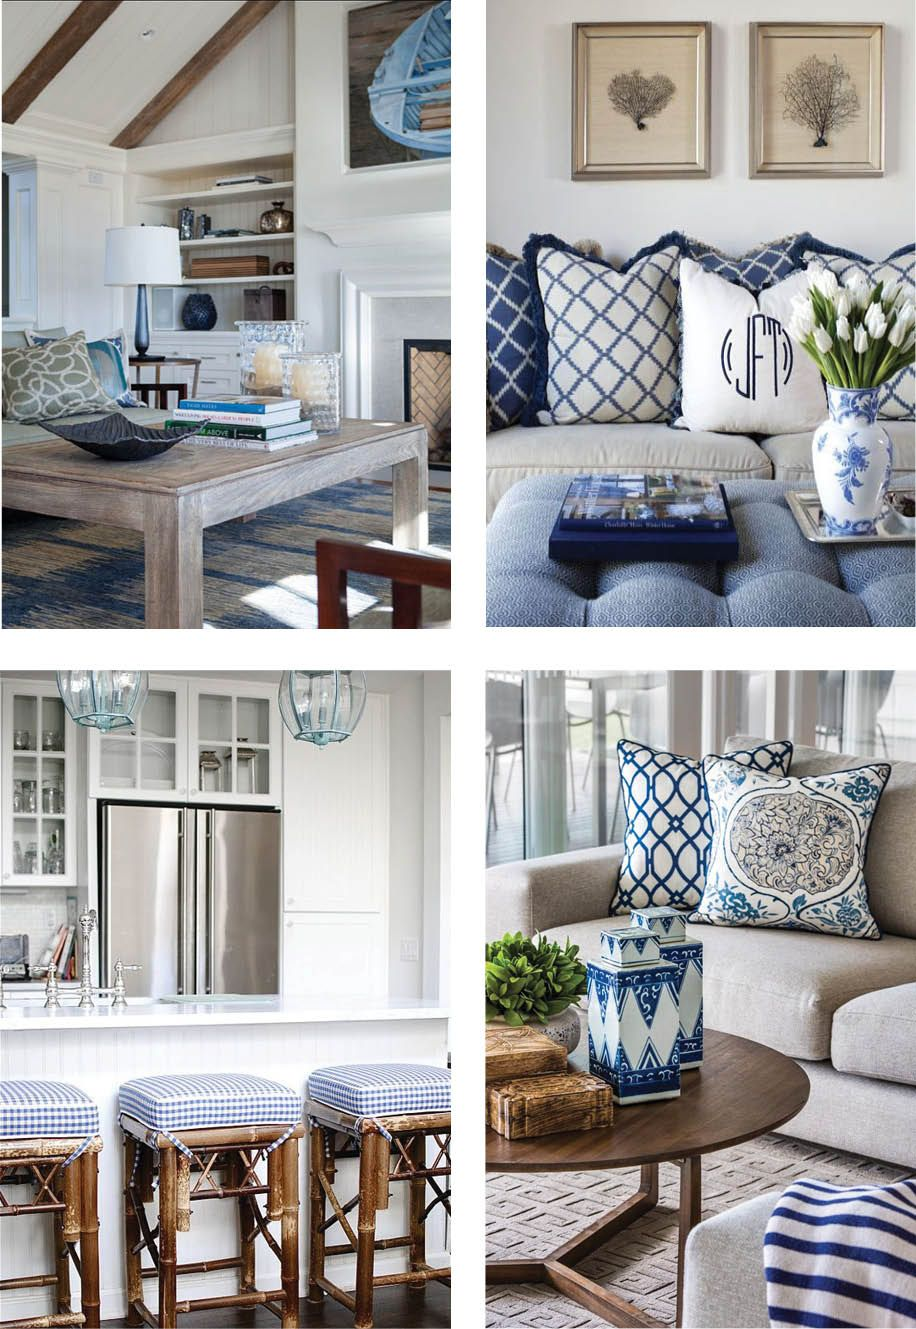 coastal style hamptons style chic in blue hamptons style living pinterest wohnzimmer. Black Bedroom Furniture Sets. Home Design Ideas